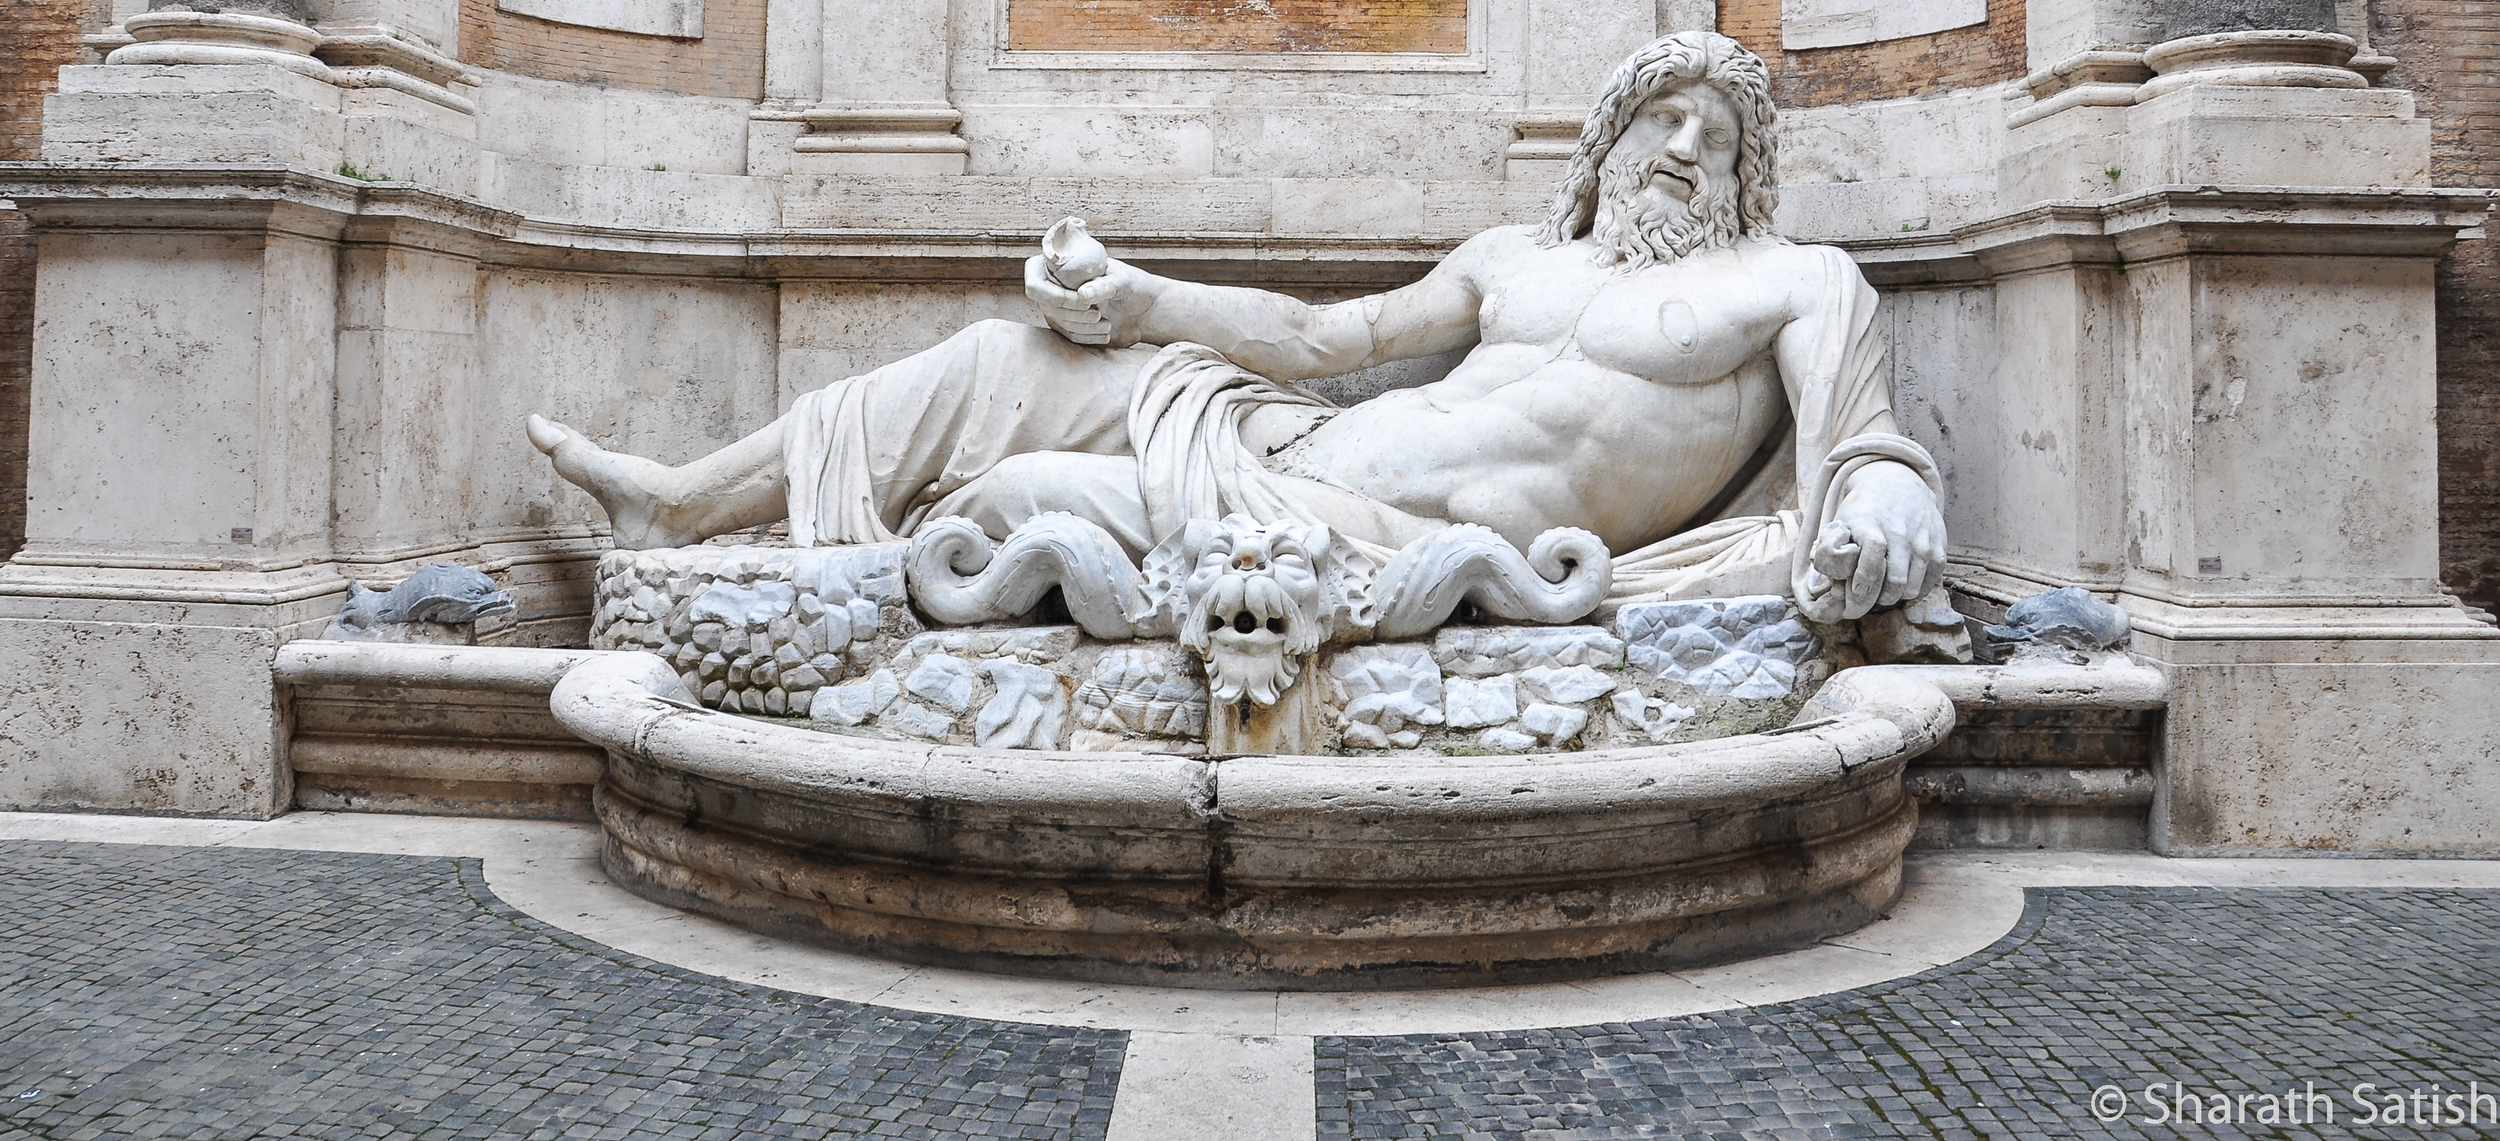 One of the many sculptures on display inside the Musei Capitolini